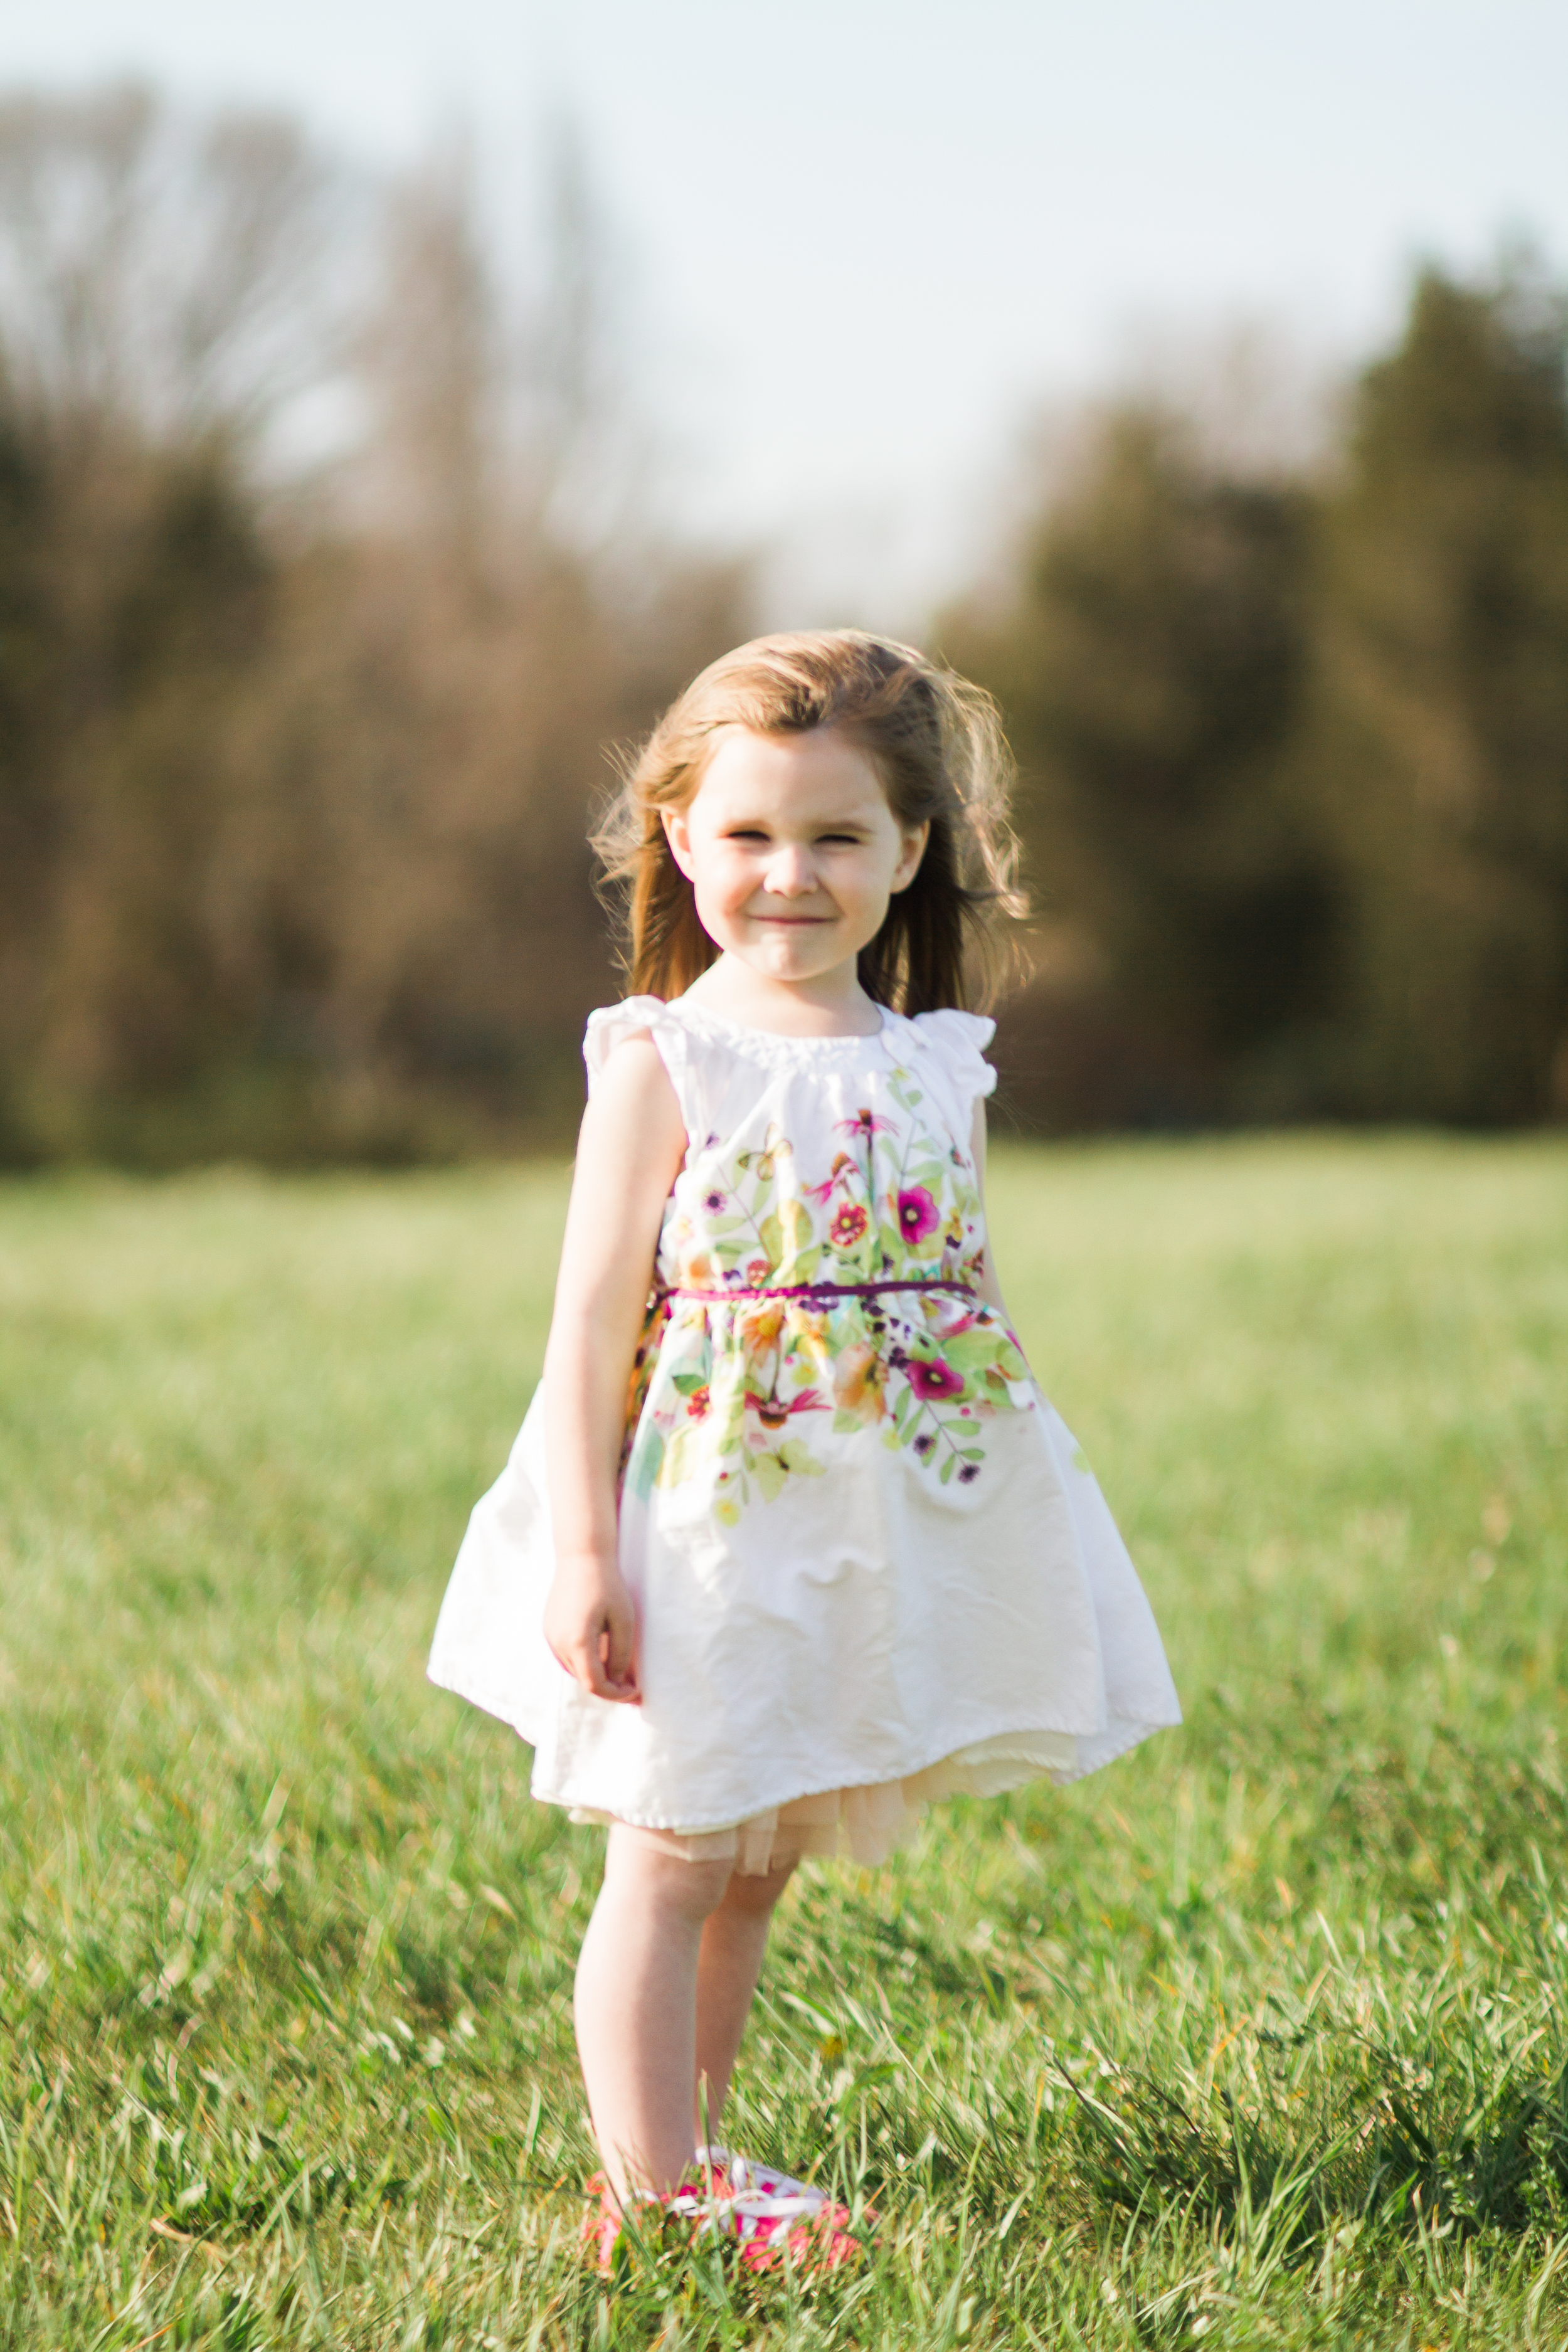 2016-04-21 Lily at the Field-13.jpg